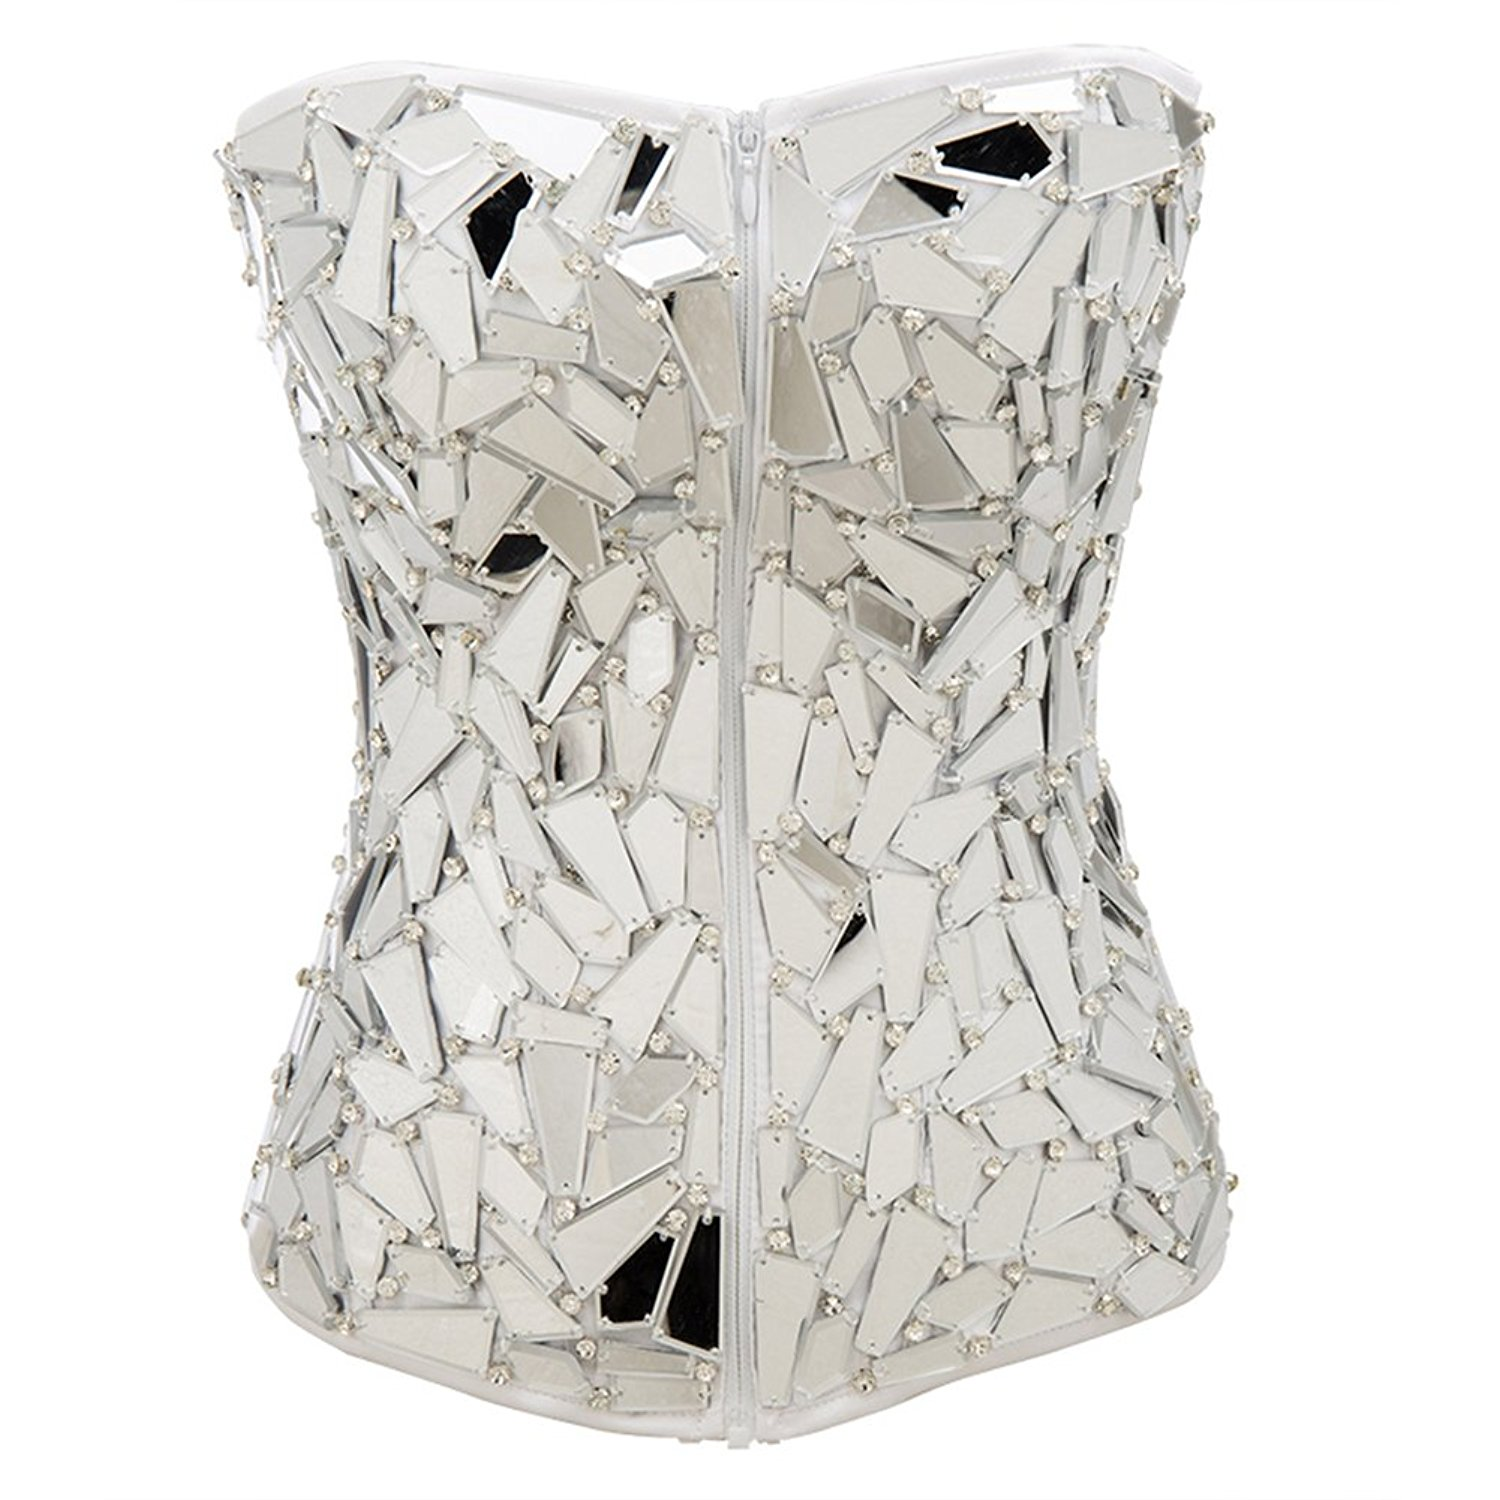 f10fad9ee78 Get Quotations · Alex sweet Womens Sexy Faux Leather Zipper Front Bustier  Corset Top-Waist Training Corset